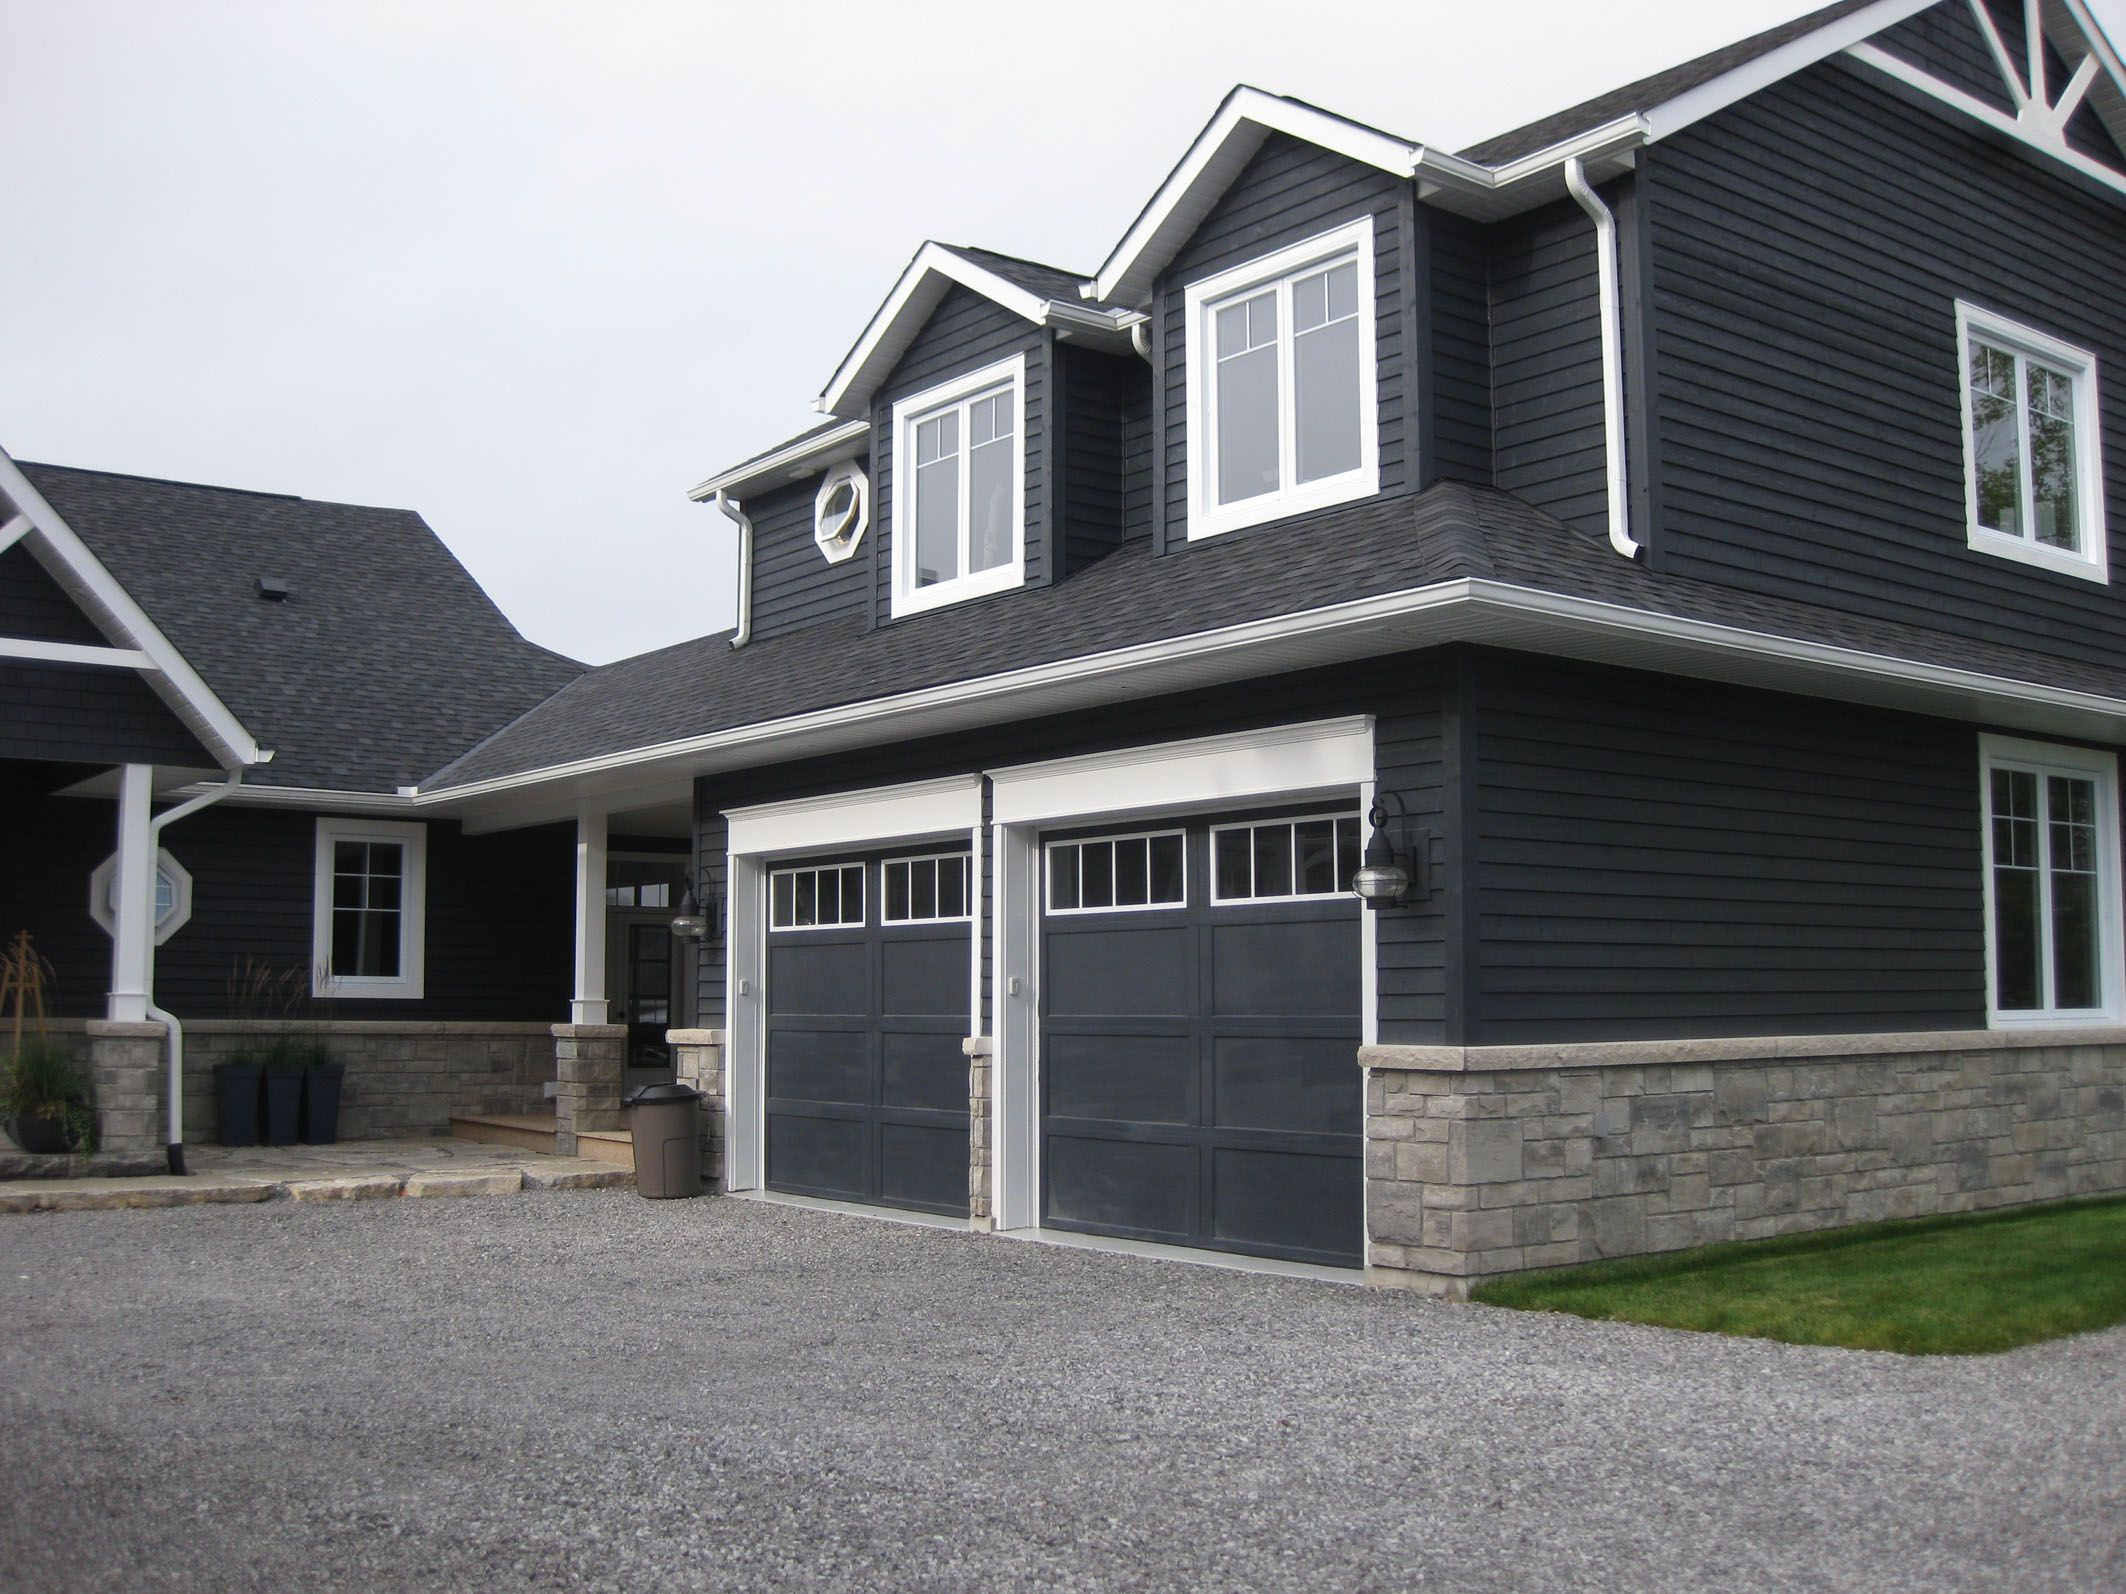 Dark grey house exterior google search house exterior pinterest dark gray houses grey - Grey painted house exteriors model ...